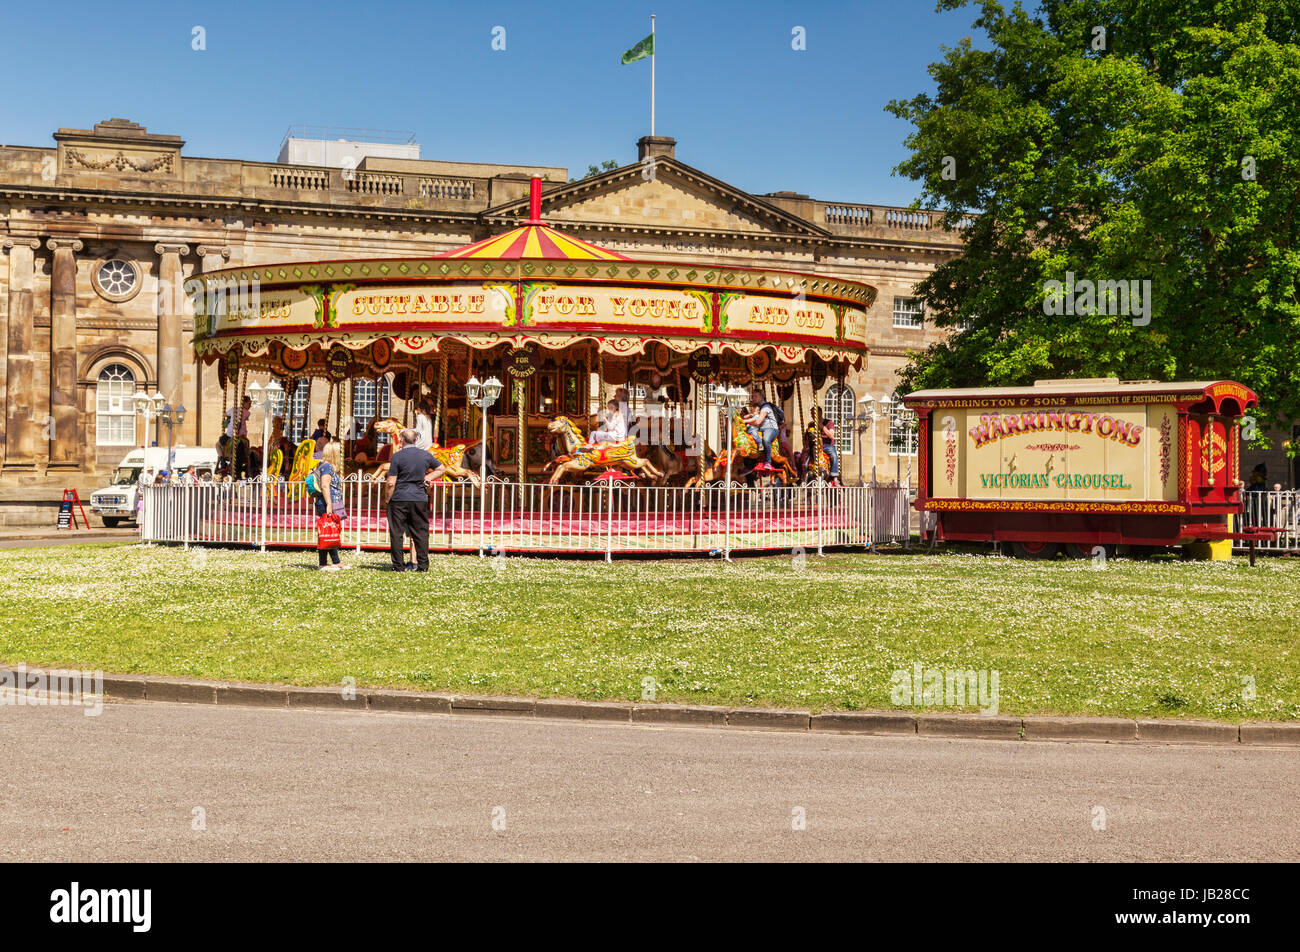 31 May 2017: York, North Yorkshire, England, UK - A Victorian Carousel on the grass in front of the Castle Museum. - Stock Image